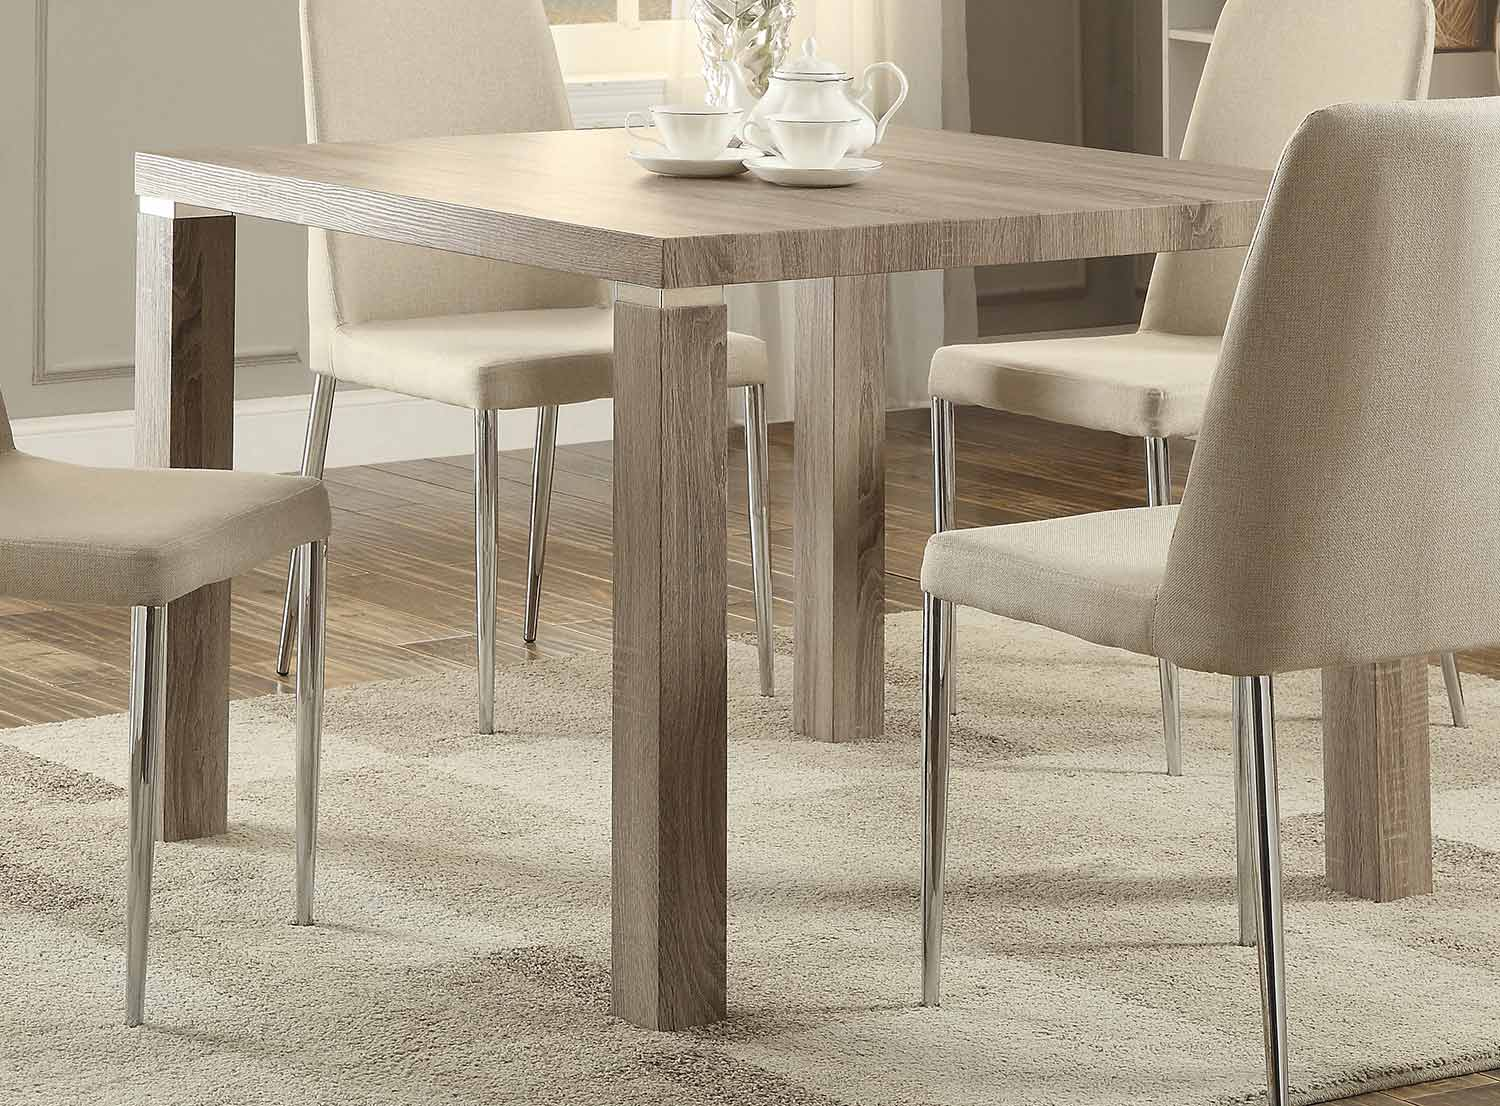 Homelegance Luzerne Dining Table - Washed Weathered Wood Legs